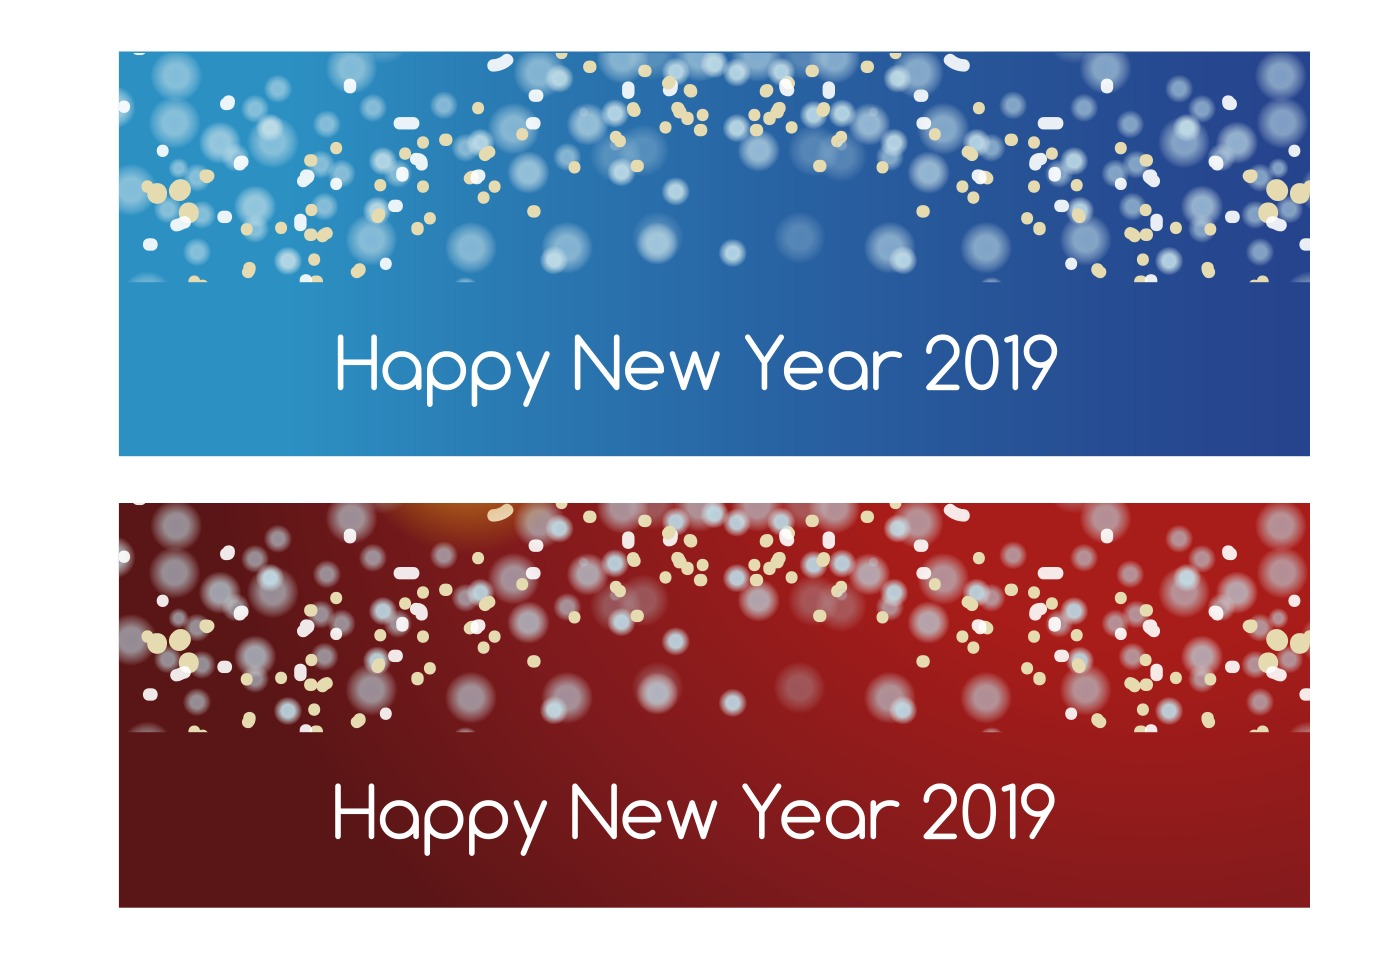 new year 2019 banners download free vectors clipart graphics vector art new year 2019 banners download free